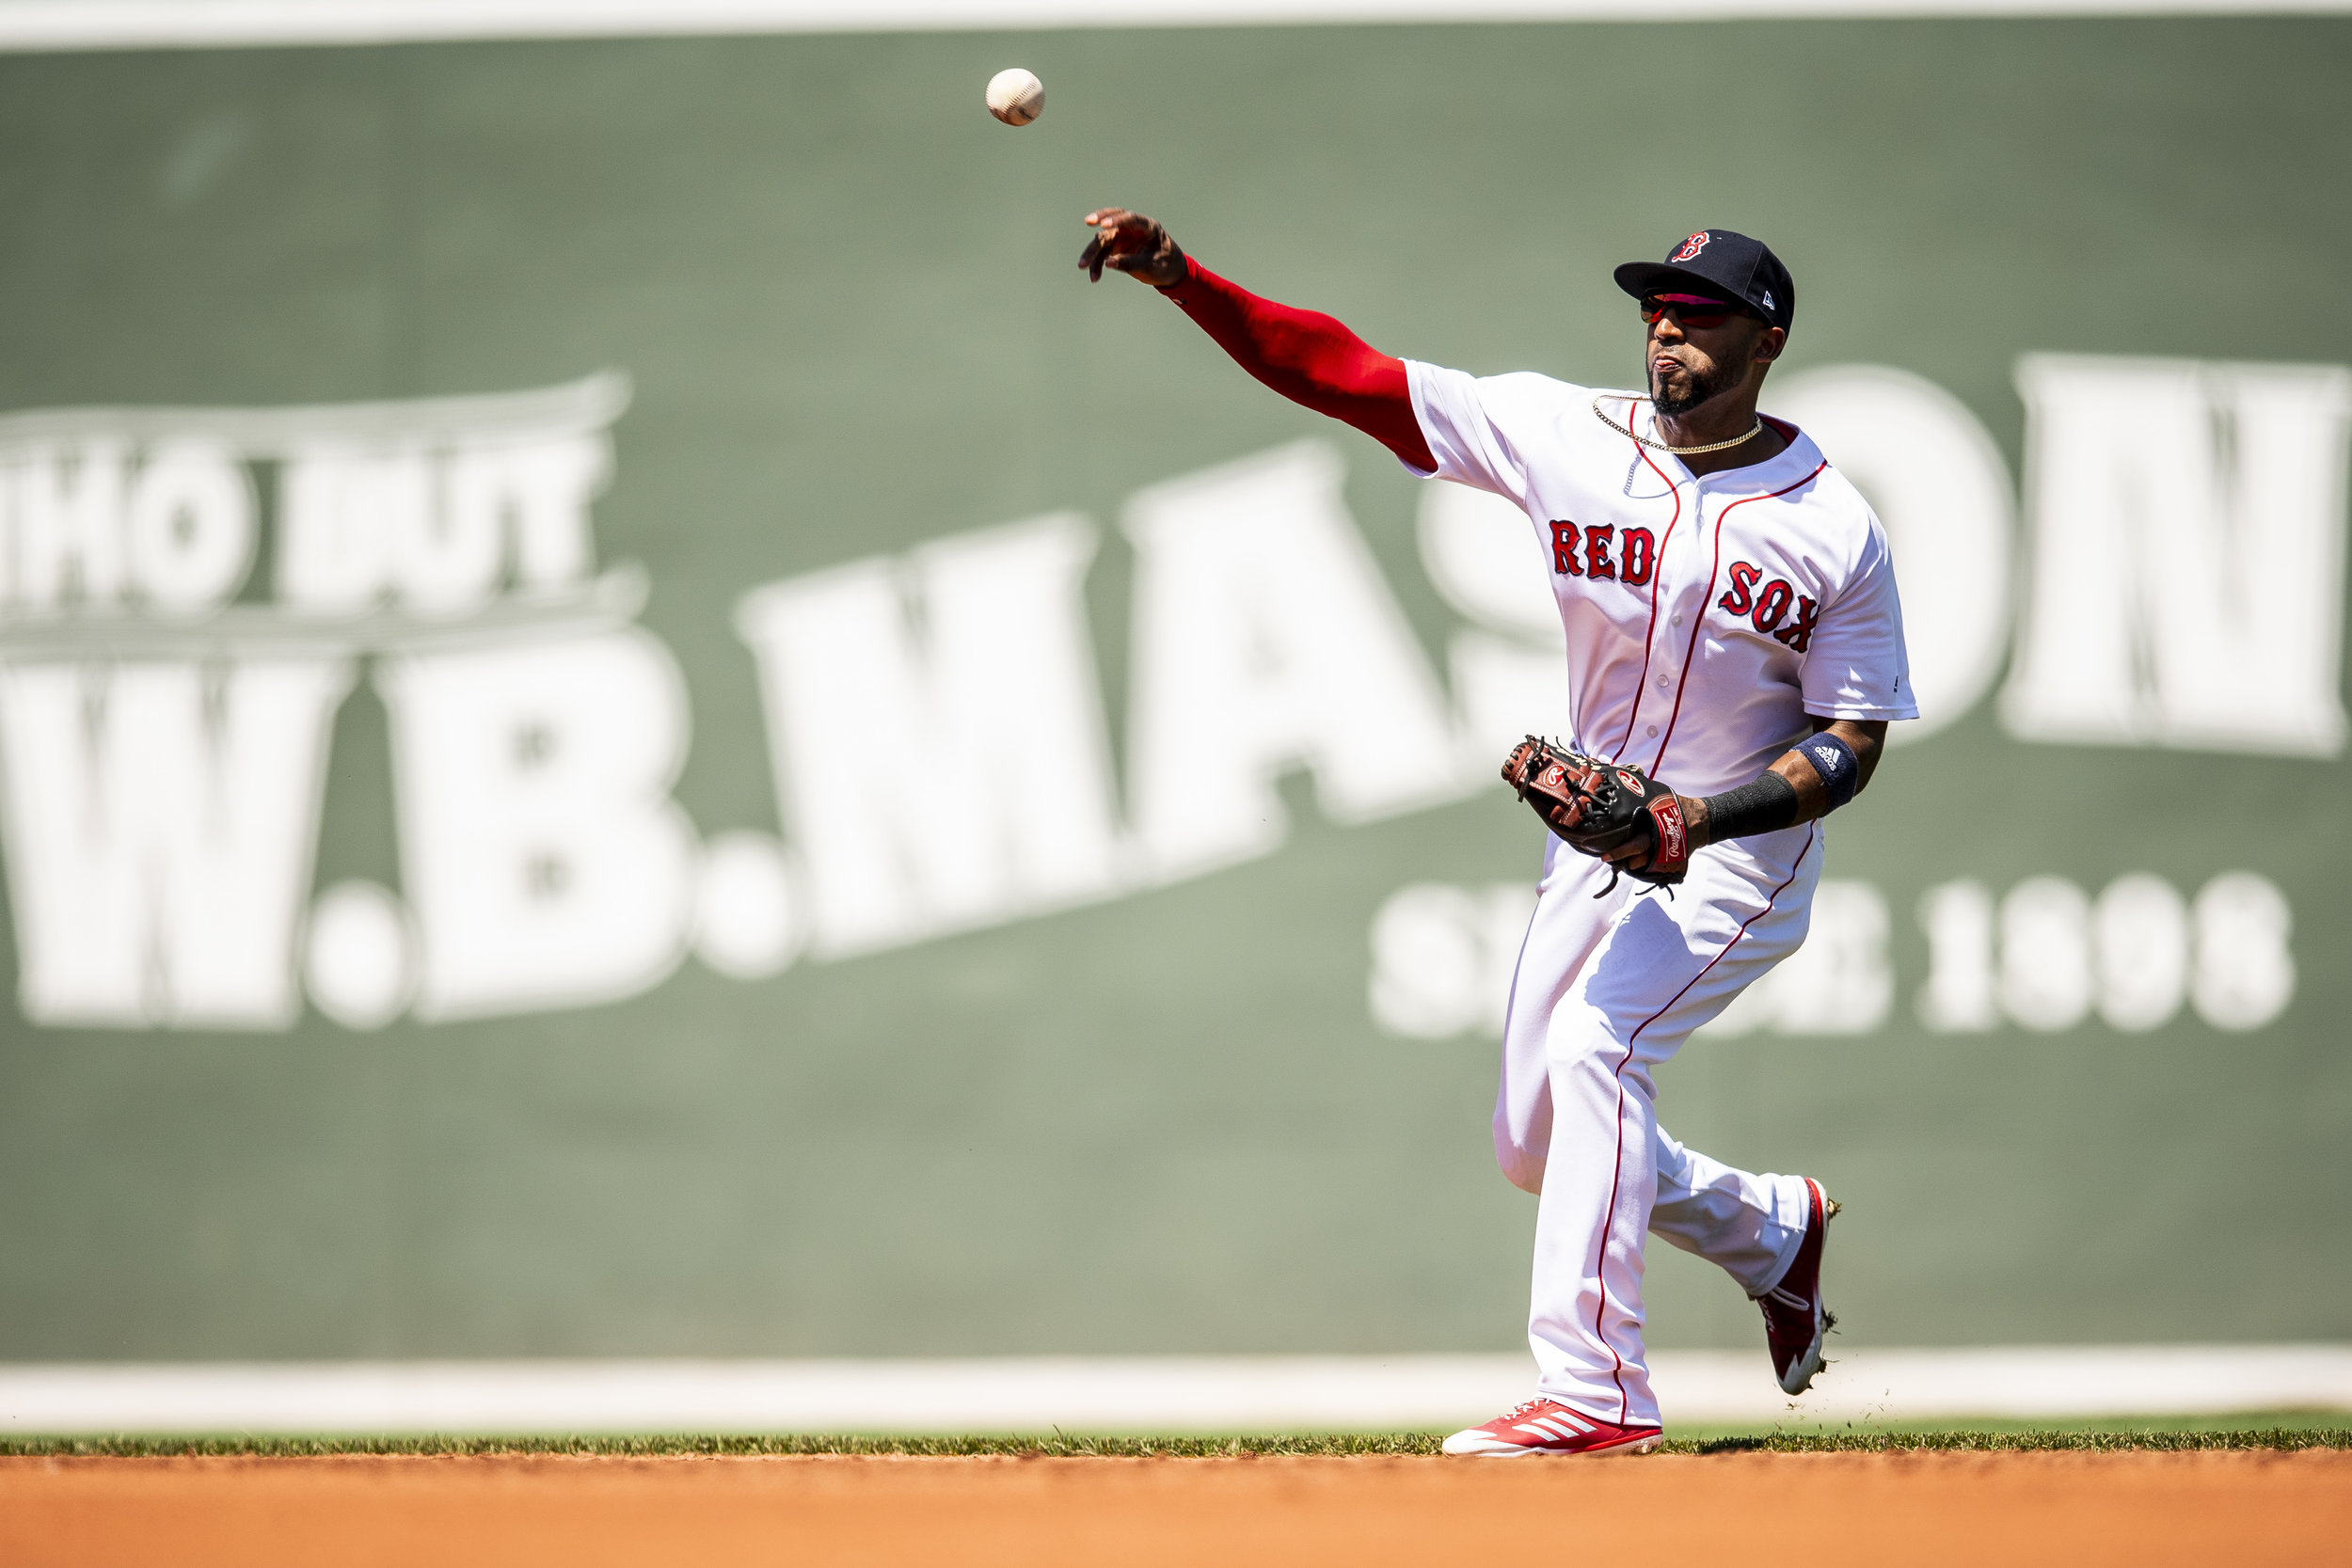 May 2, 2018, Boston, MA: Boston Red Sox second basemen Eduardo Nunez makes a throw from shortstop as the Boston Red Sox face the Kansas City Royals at Fenway Park in Boston, Massachusetts Wednesday, May 2, 2018. (Photo by Matthew Thomas/Boston Red Sox)